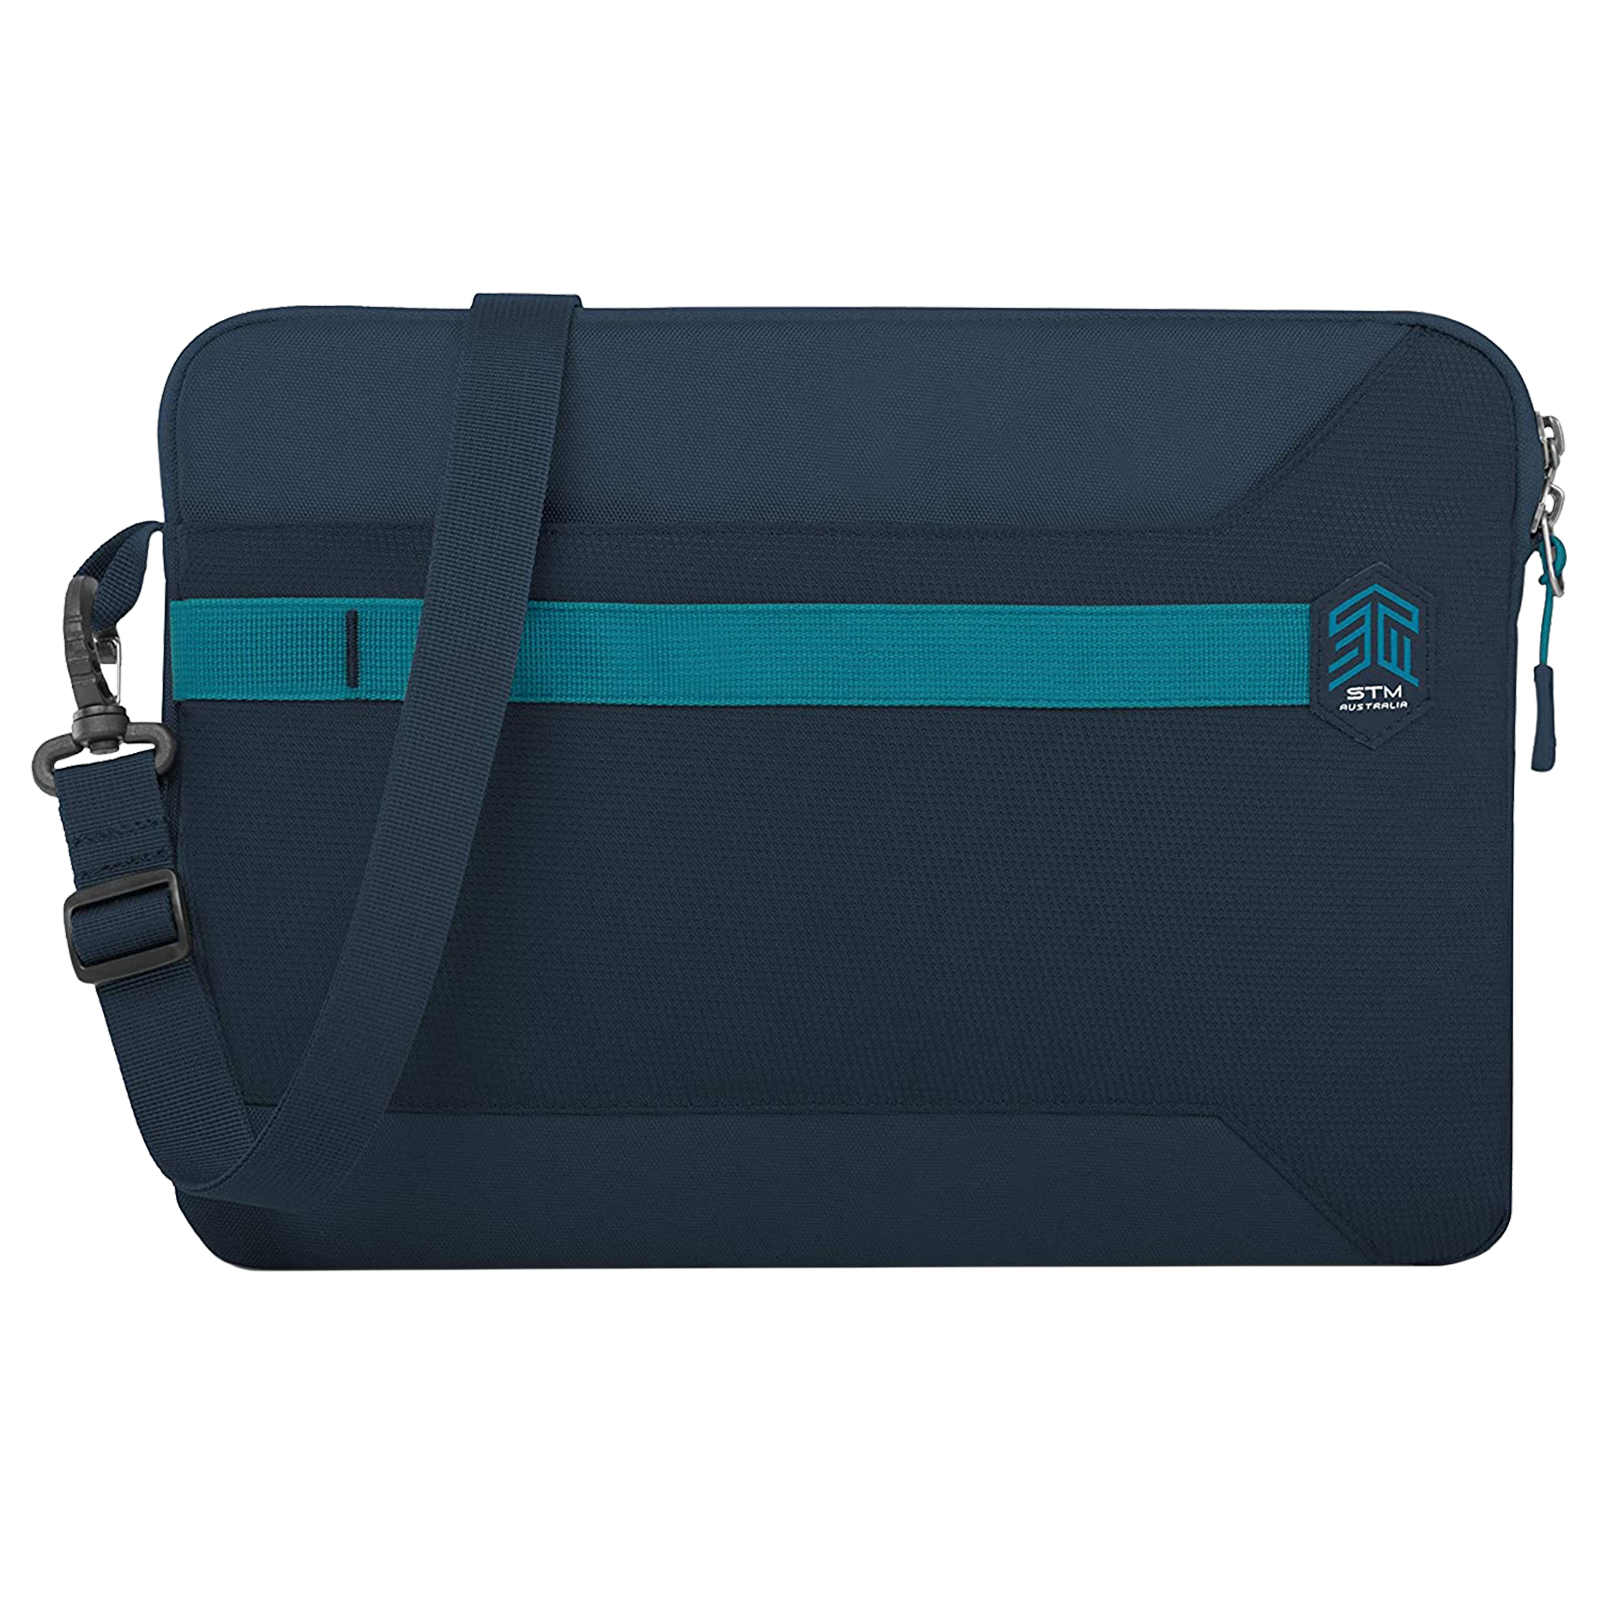 STM Blazer Litres Polyester Sleeve for 15 Inch Laptop (Water Resistant Fabric, STM-114-191P-02, Dark Navy)_1